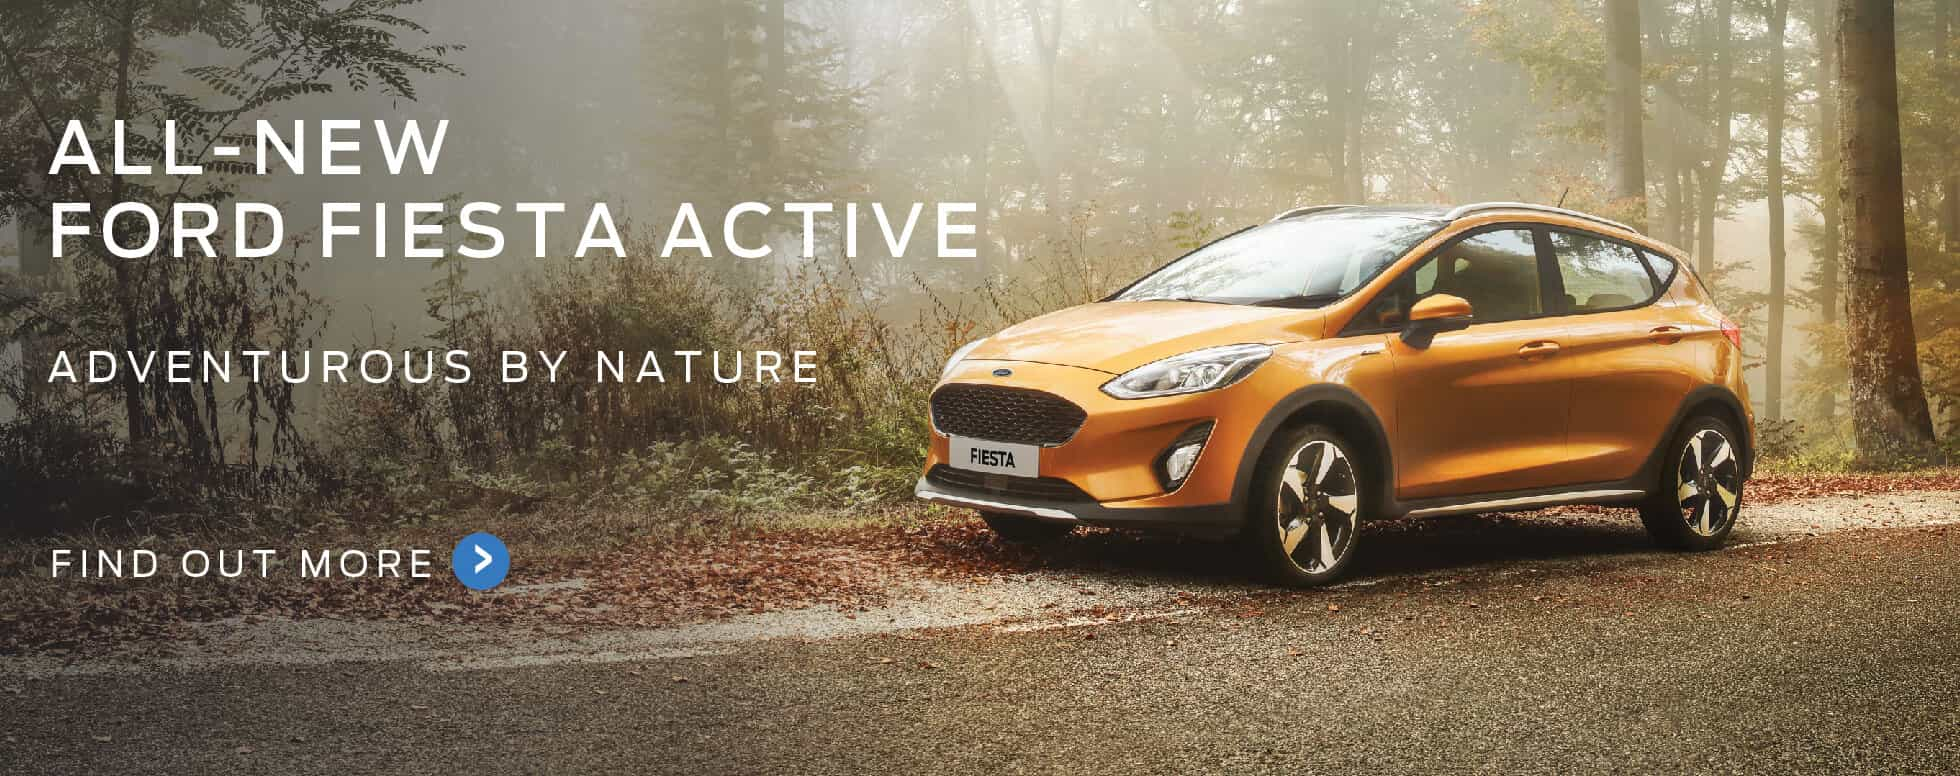 All-New Ford Fiesta Active BB